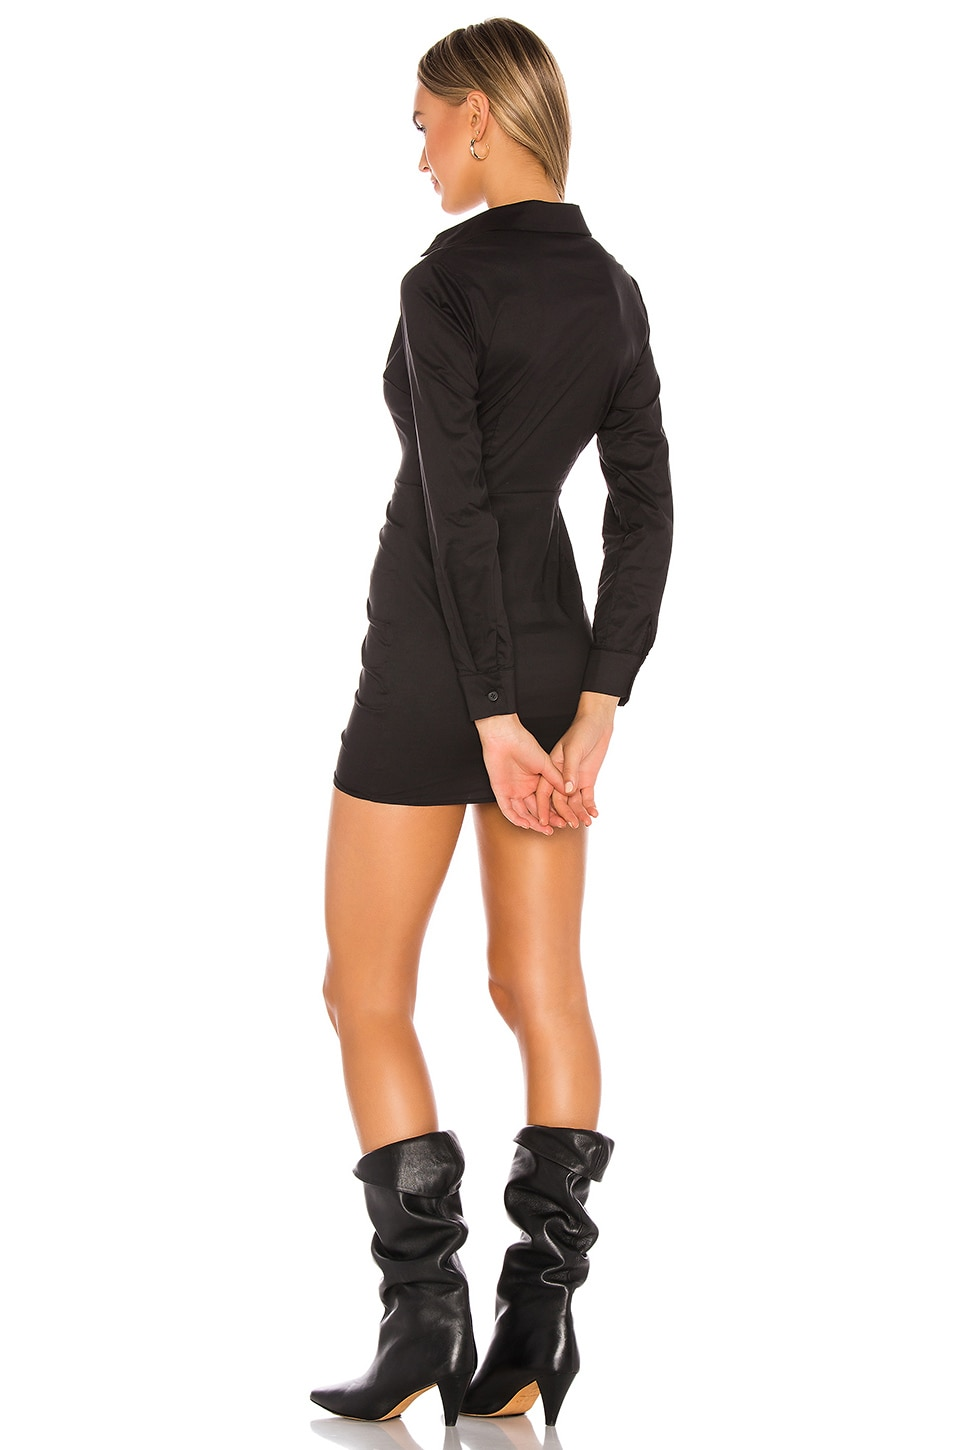 Colette Ruched Shirt Dress, view 3, click to view large image.